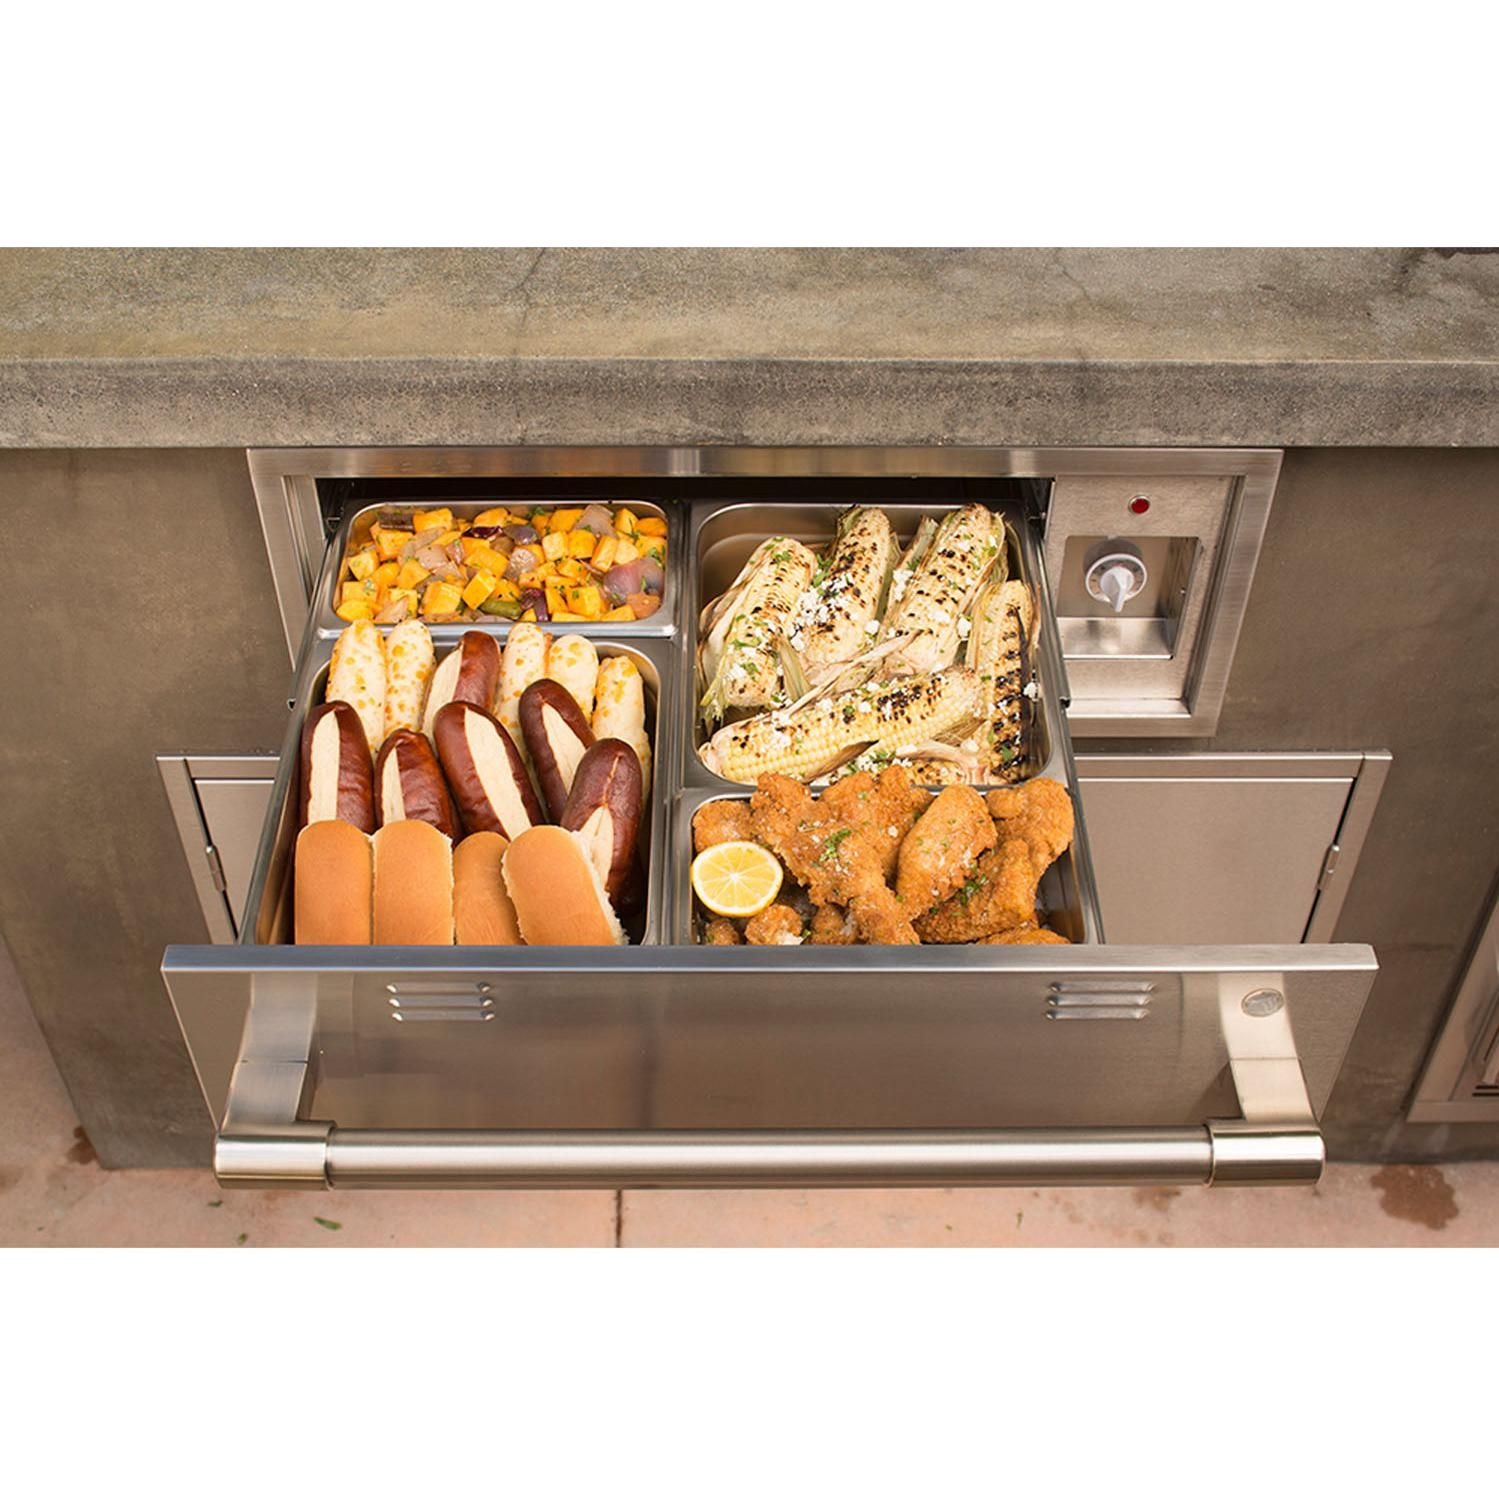 This Alfresco Axe Model Warming Drawer Features All Commercial Stainless Steel Welded Construction Sle Warming Drawer Outdoor Kitchen Cabinets Outdoor Kitchen